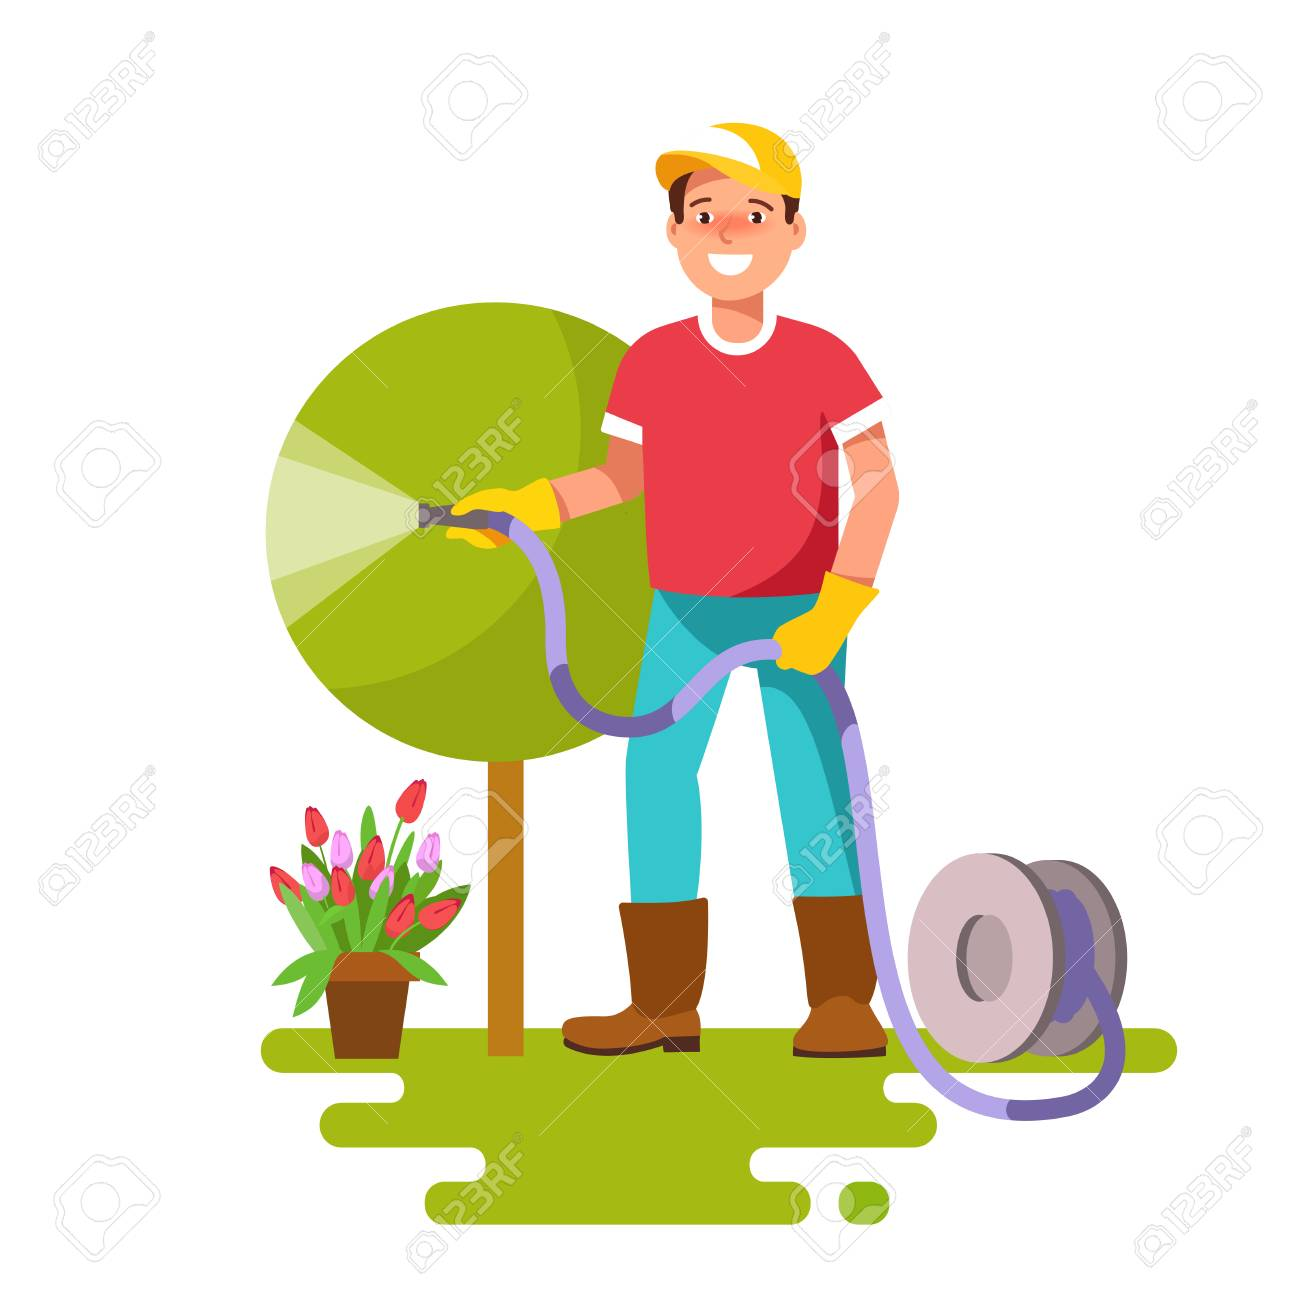 Man Watering Trees Of Three Sizes. Young Businessman Watering.. Royalty  Free Cliparts, Vectors, And Stock Illustration. Image 67168732.